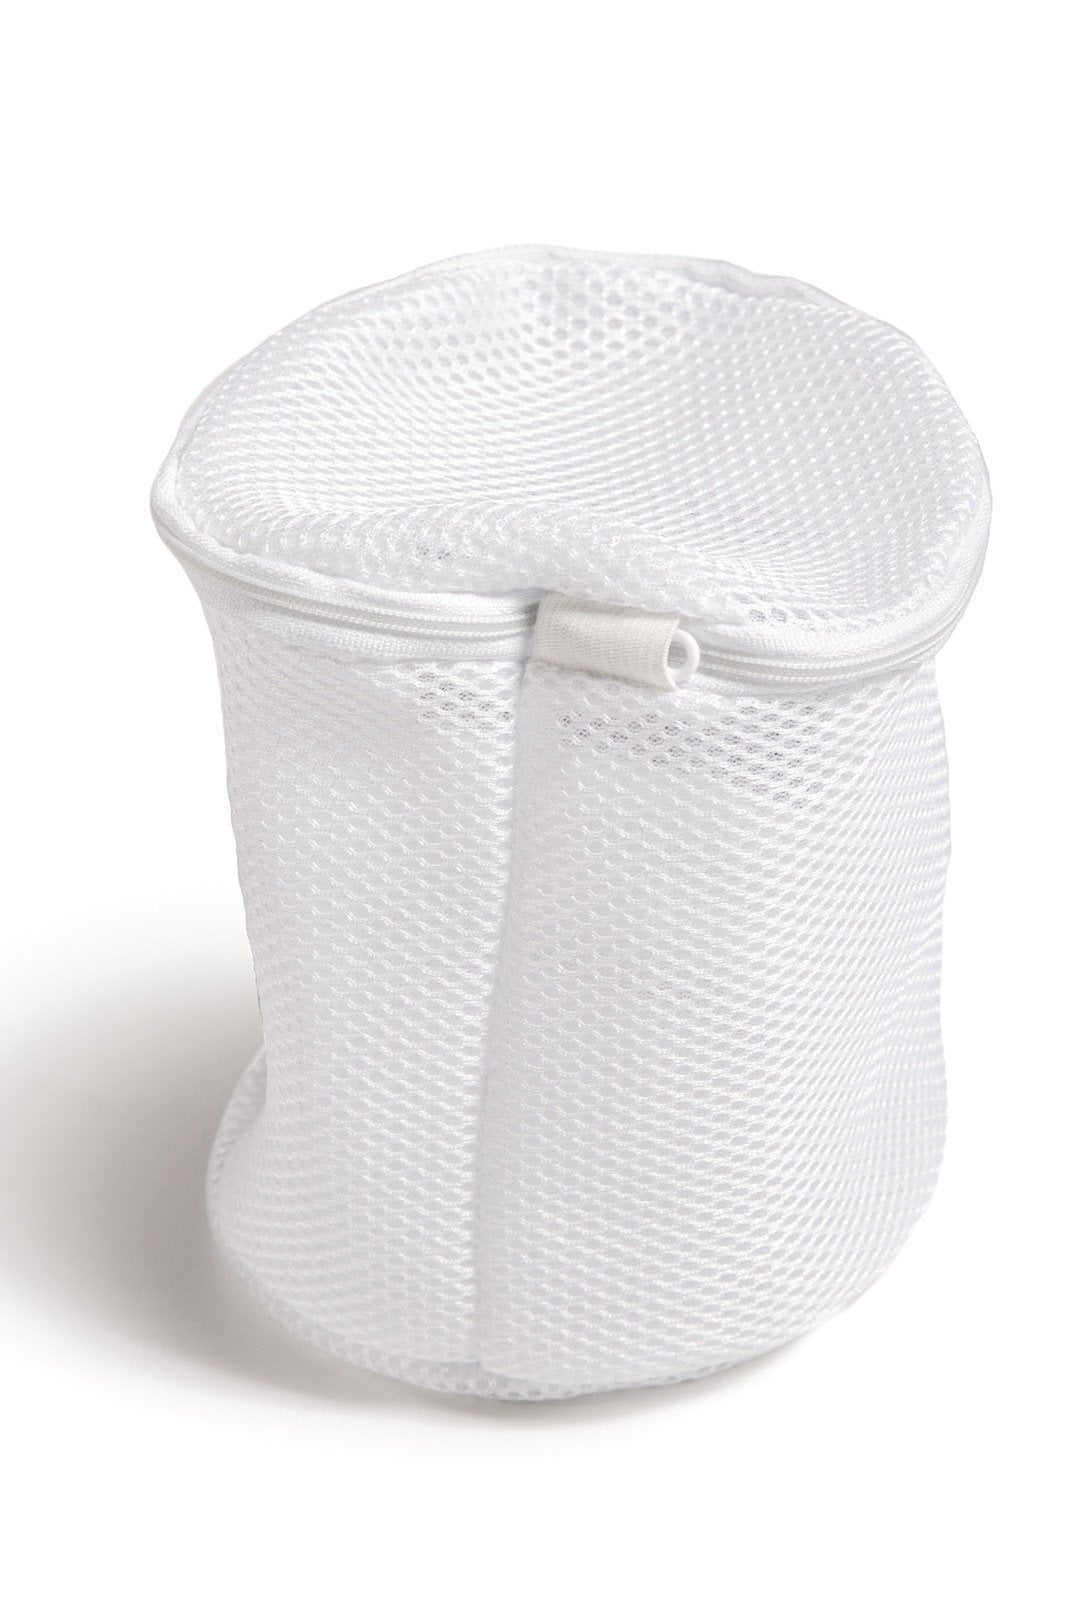 Home>Laundry>Wash Bag - Bra Sized Mesh Wash Bag With Zipper Cover